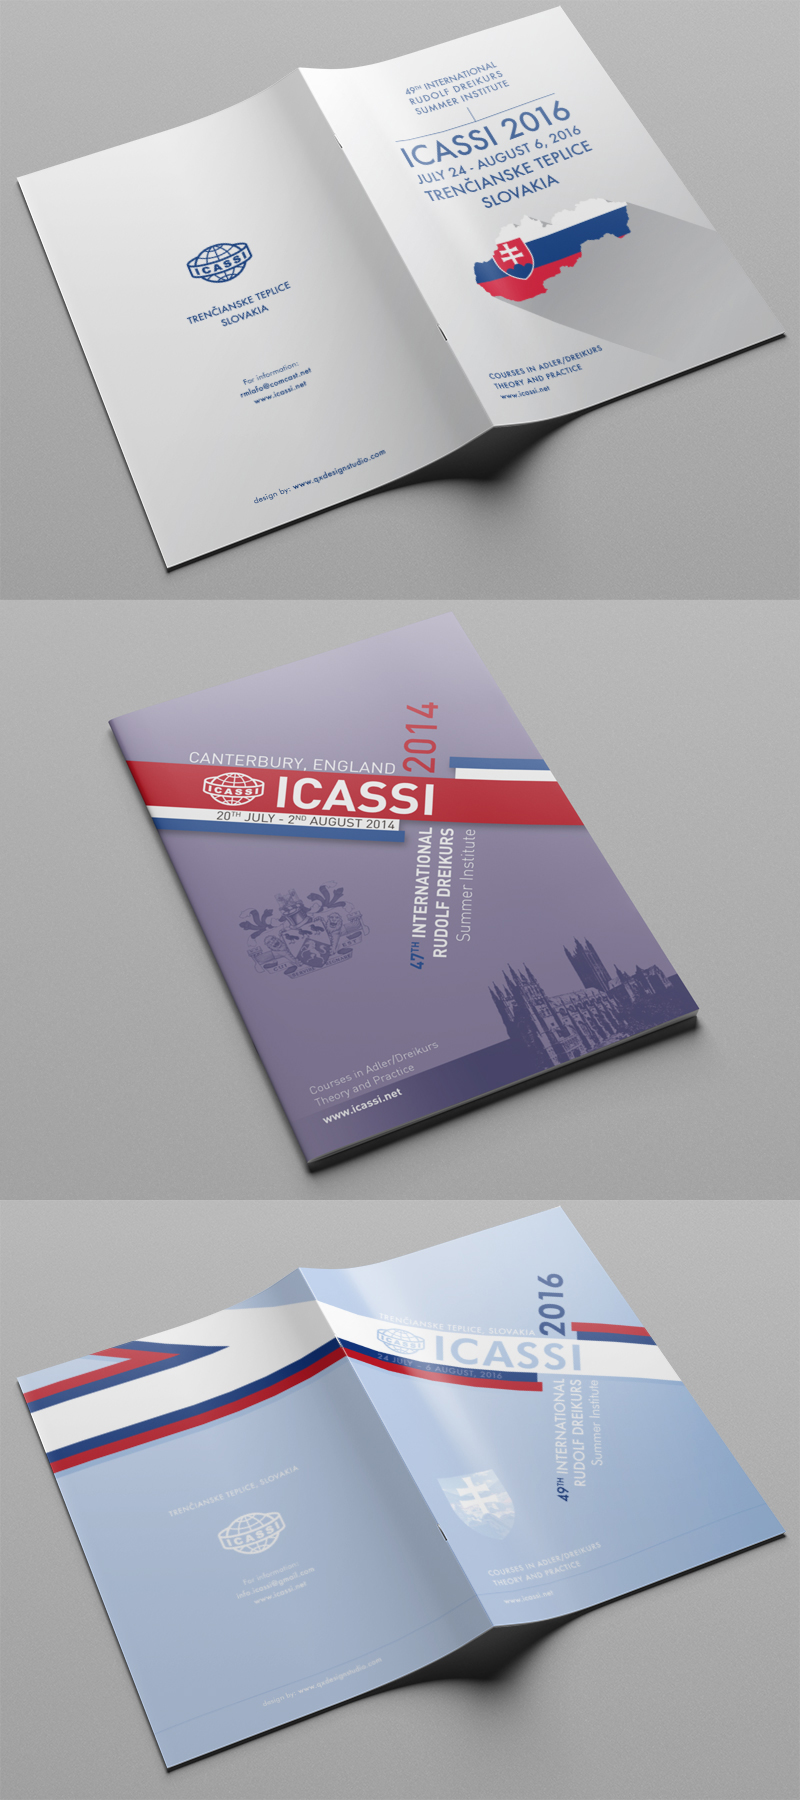 Graphic design - ICASSI conference program typographical cover artwork printed at A5